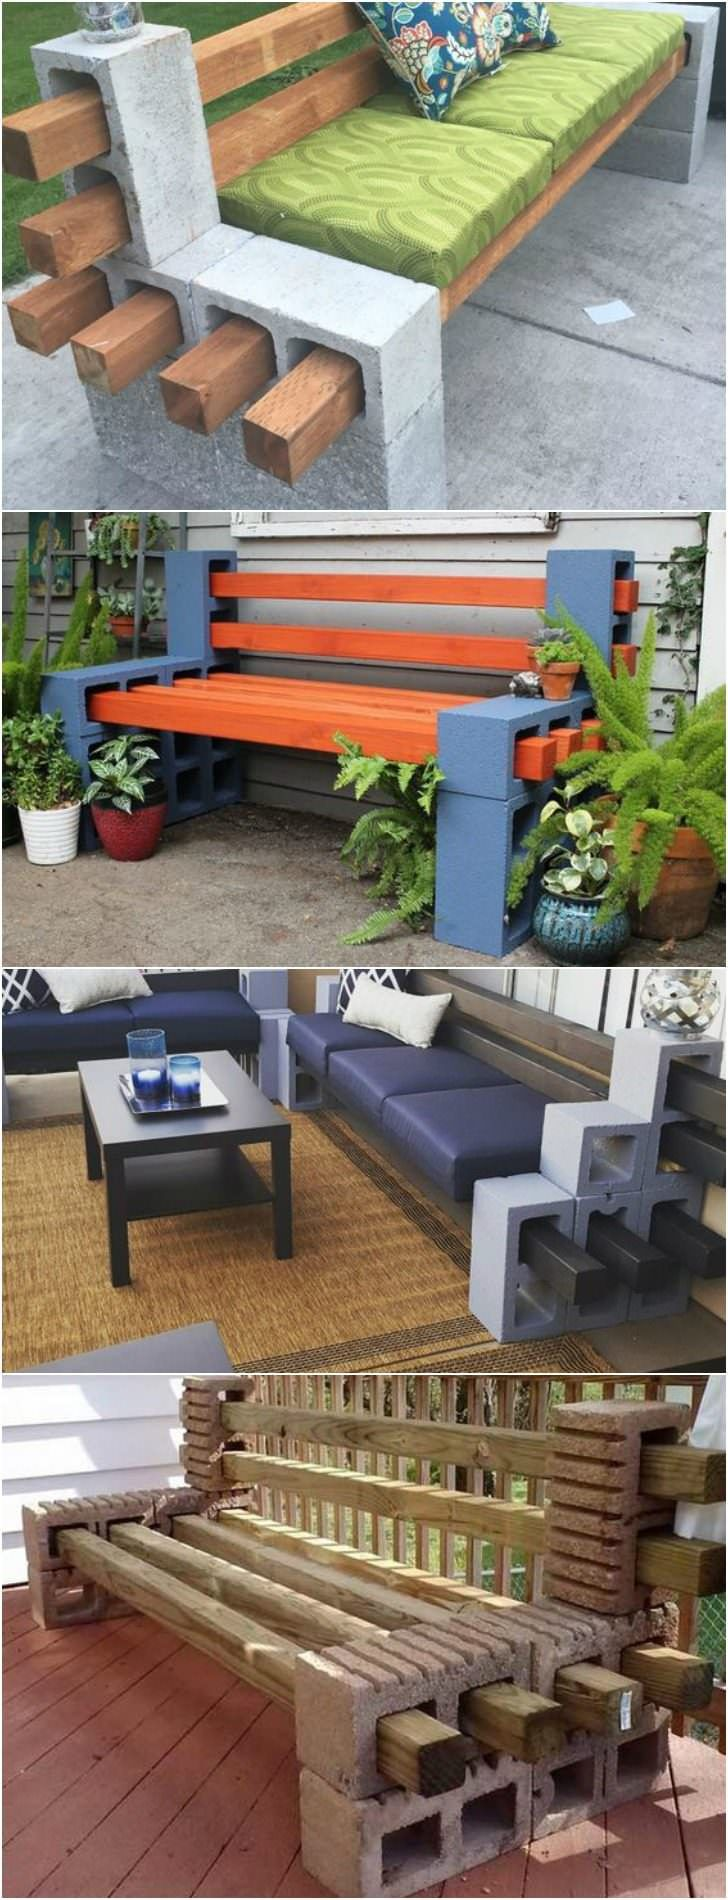 Panche Di Legno Per Giardino.How To Make A Cinder Block Bench 10 Amazing Ideas To Inspire You